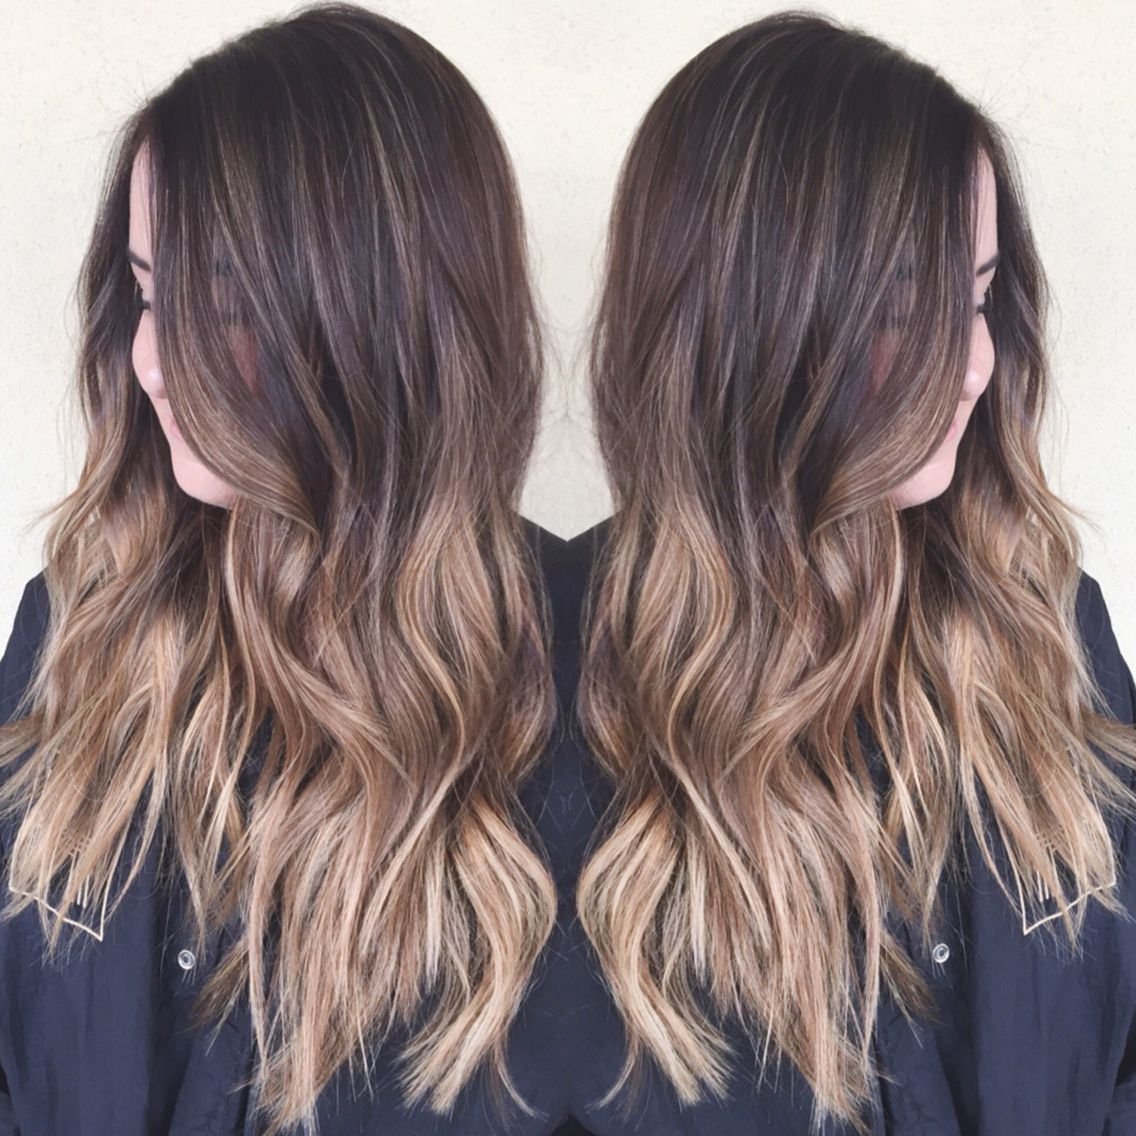 Out with ombré, in with sombré - a softer ombré with baby lights up top for a nice color melt!    #summer #hair #ombré #love #beauty #hairstyle #longhair #somebre